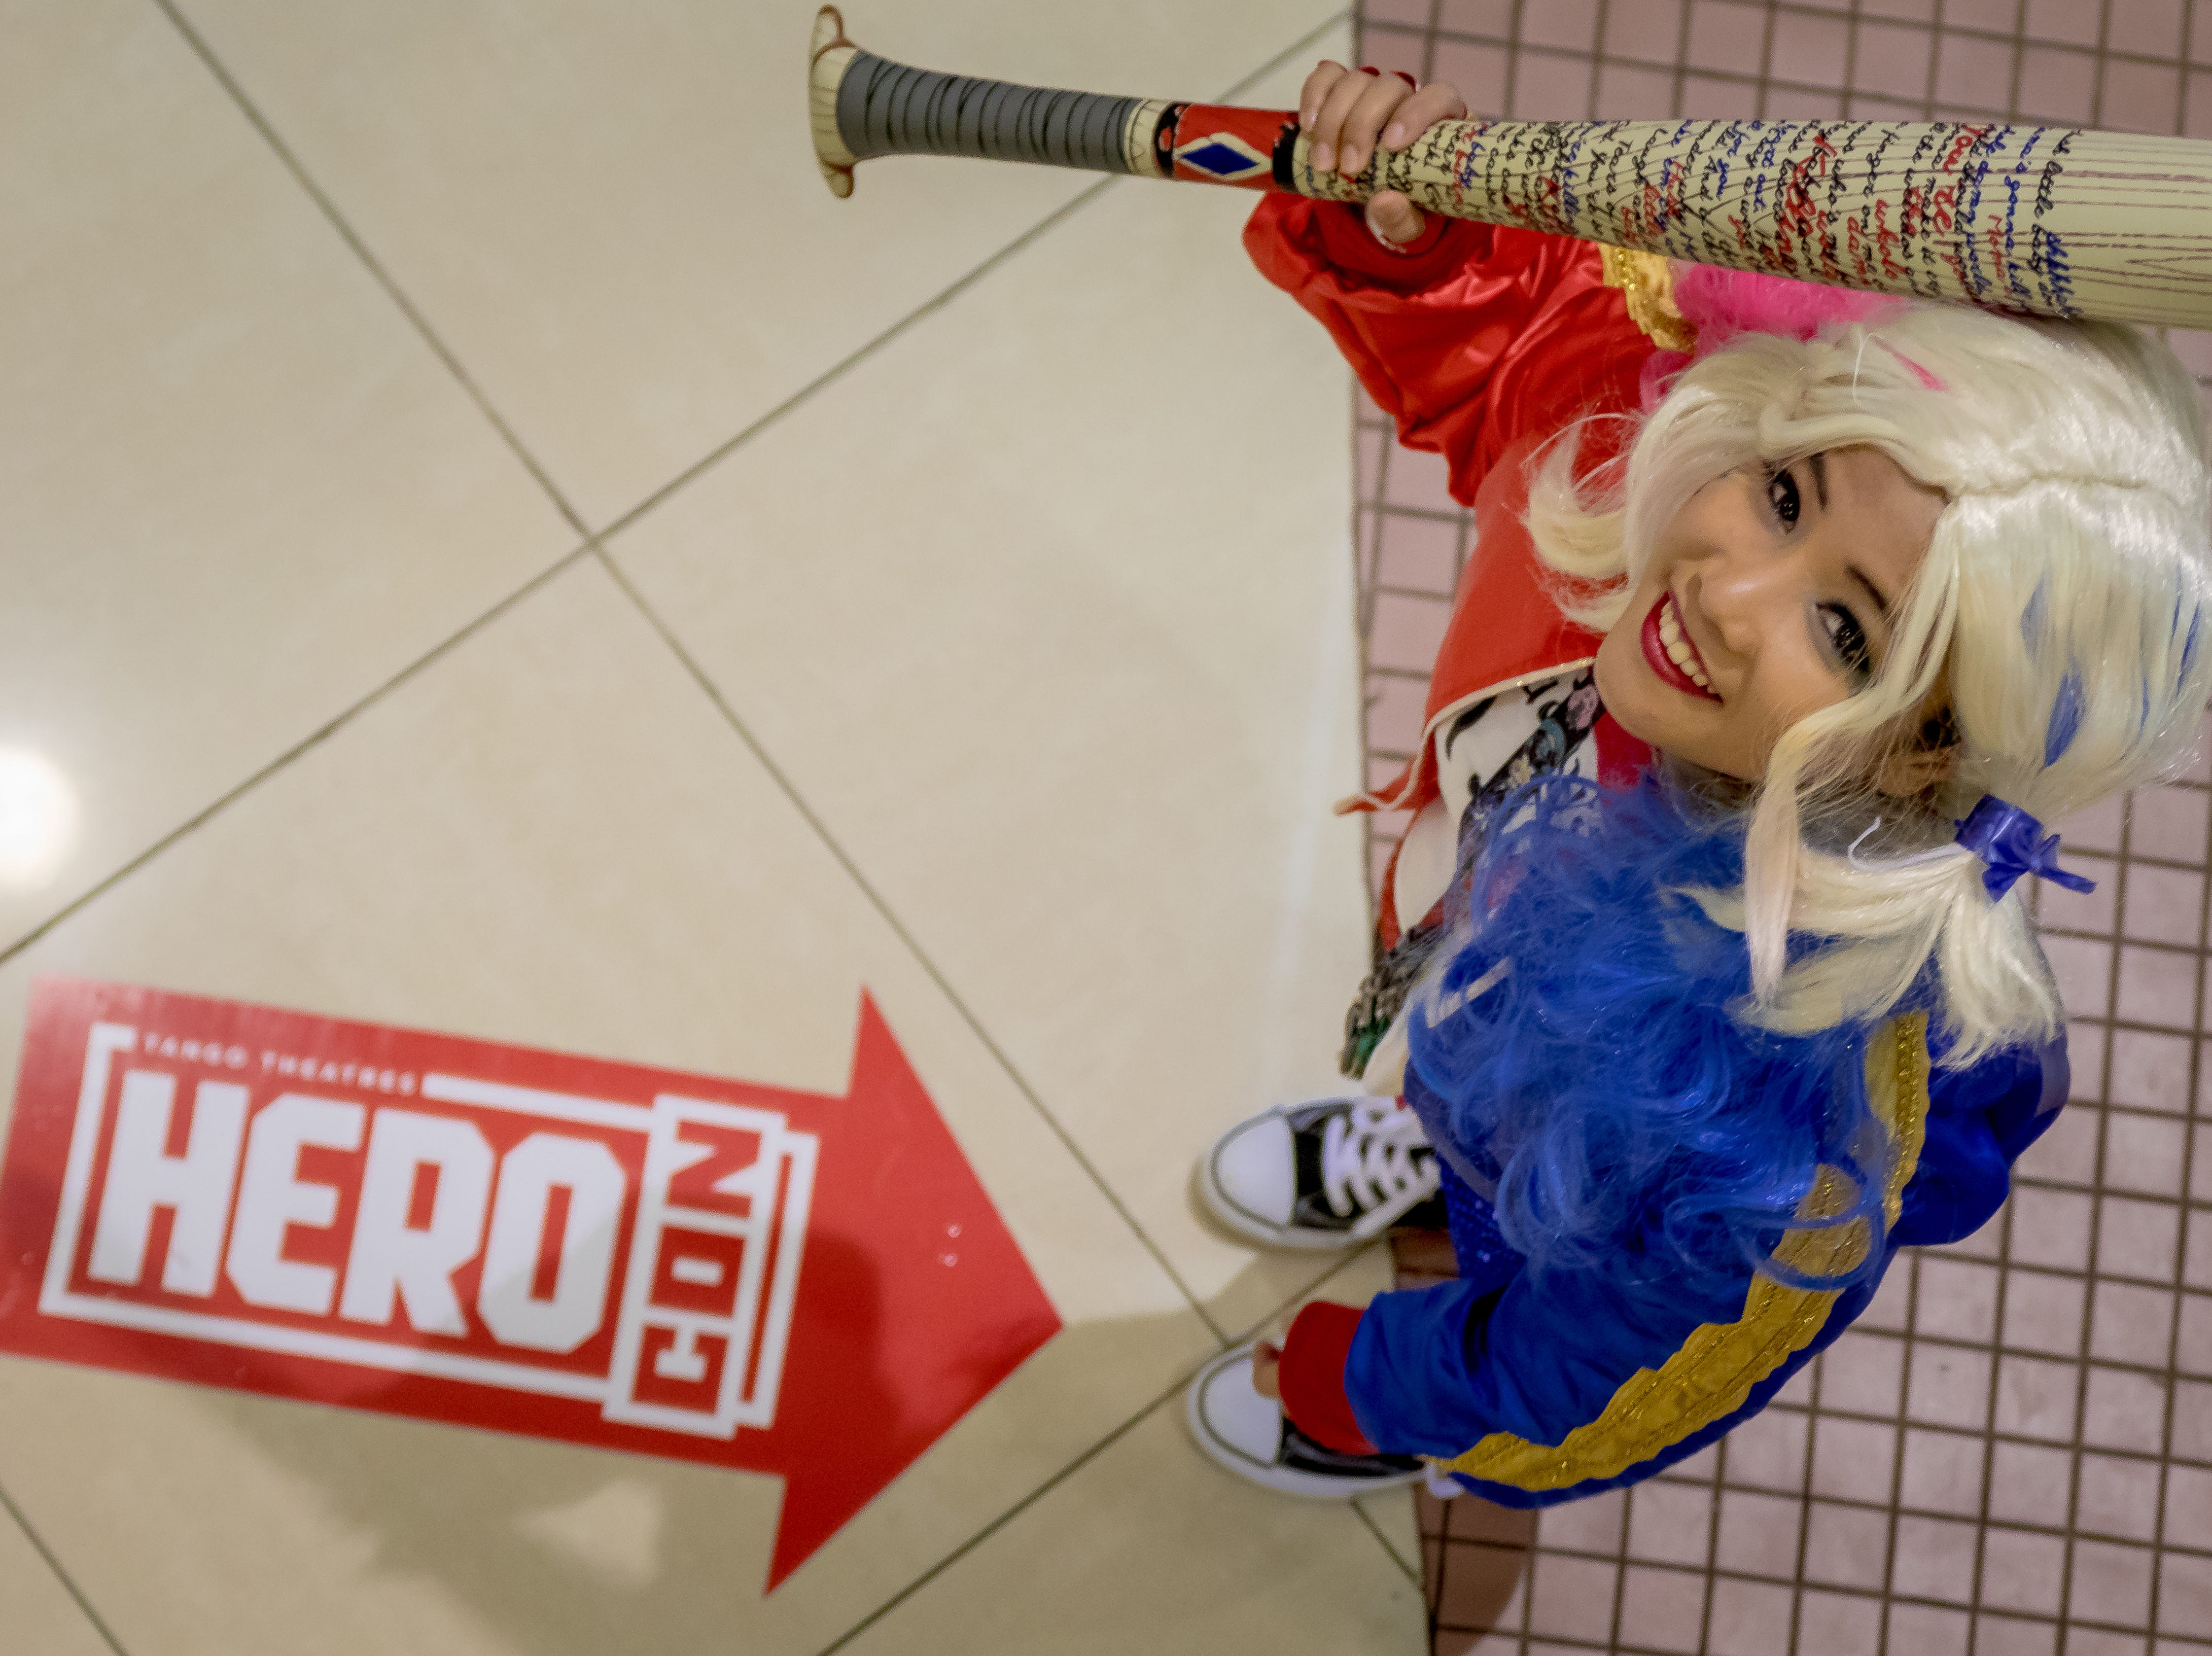 Riza Henderson is Harley Quinn from Suicide Squad during the Herocon event held at Agana Shopping Center on Dec. 9.